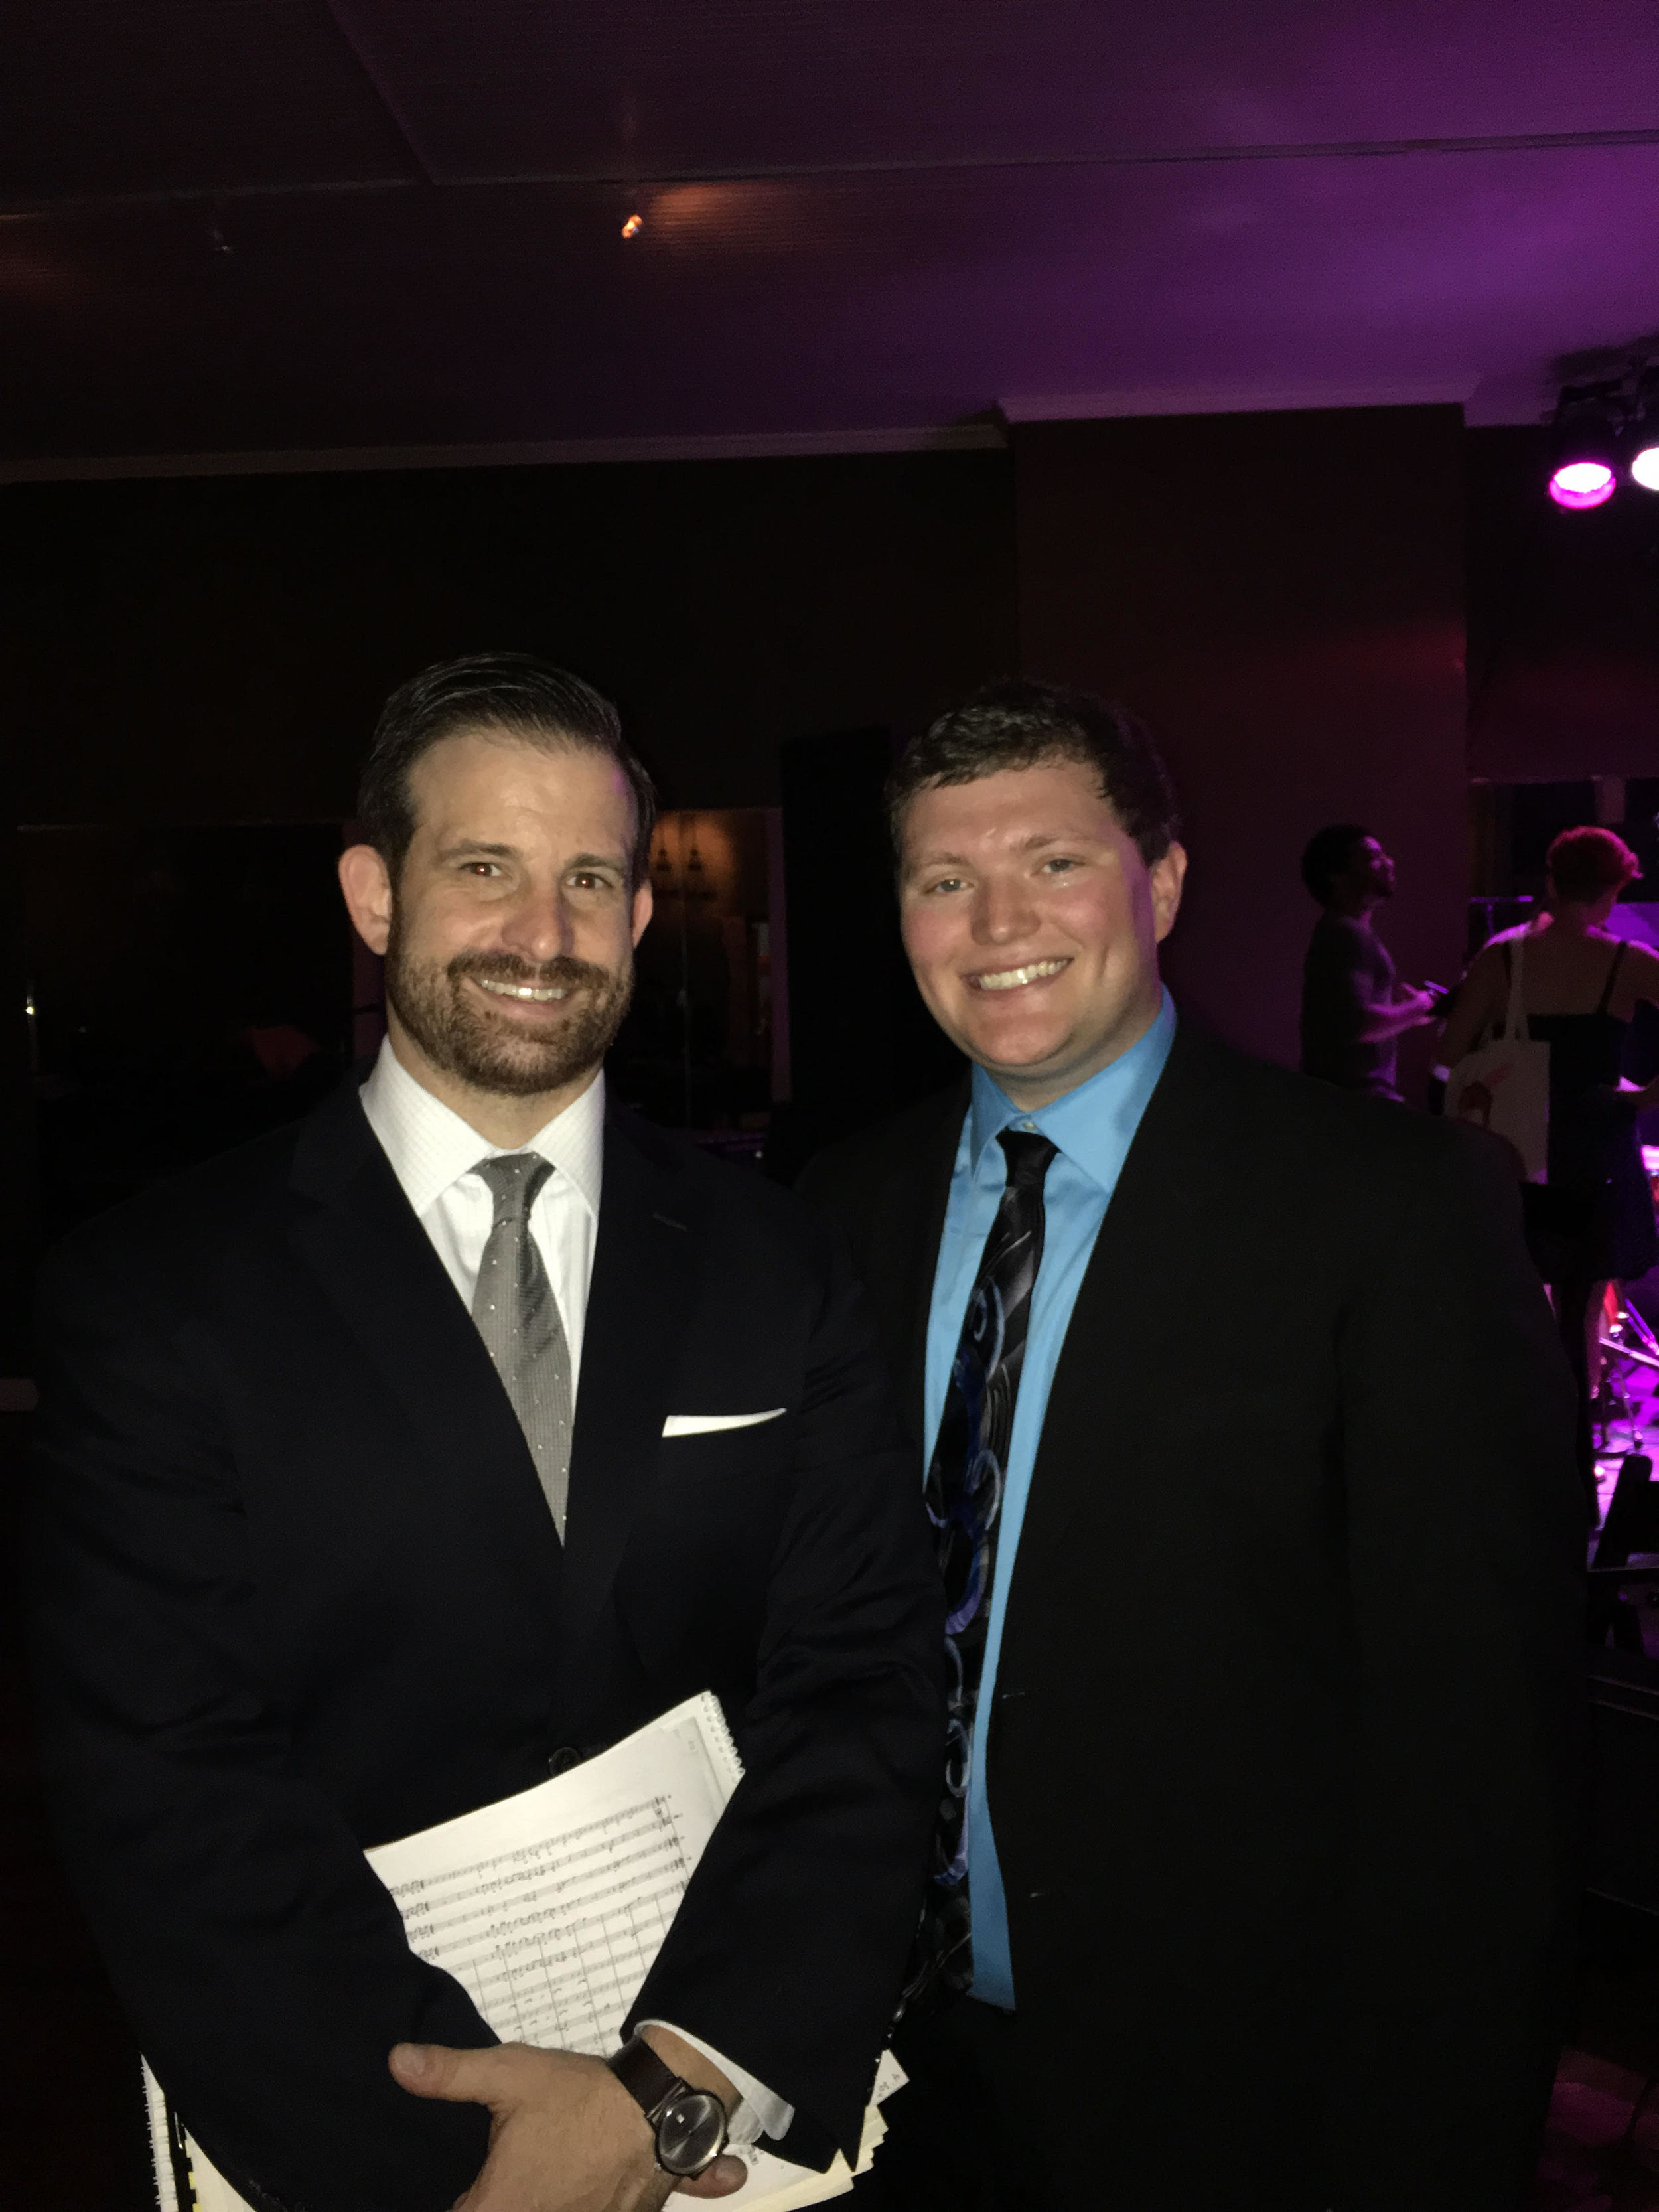 Dr. Kevin Whalen (Director of Jazz Studies at CSU) with Brandon